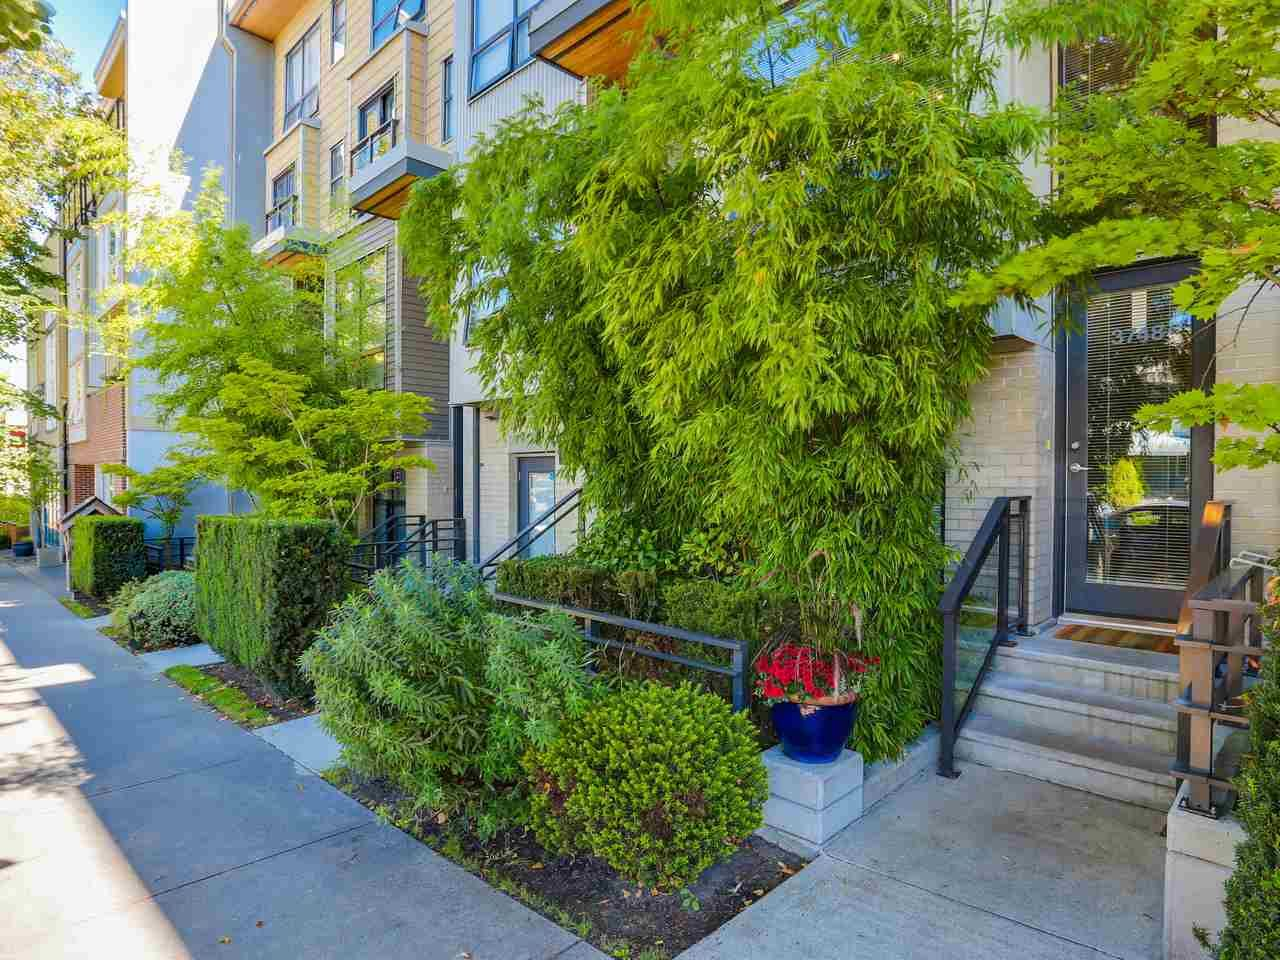 """Main Photo: 3748 COMMERCIAL Street in Vancouver: Victoria VE Townhouse for sale in """"BRIX 1"""" (Vancouver East)  : MLS®# R2107827"""